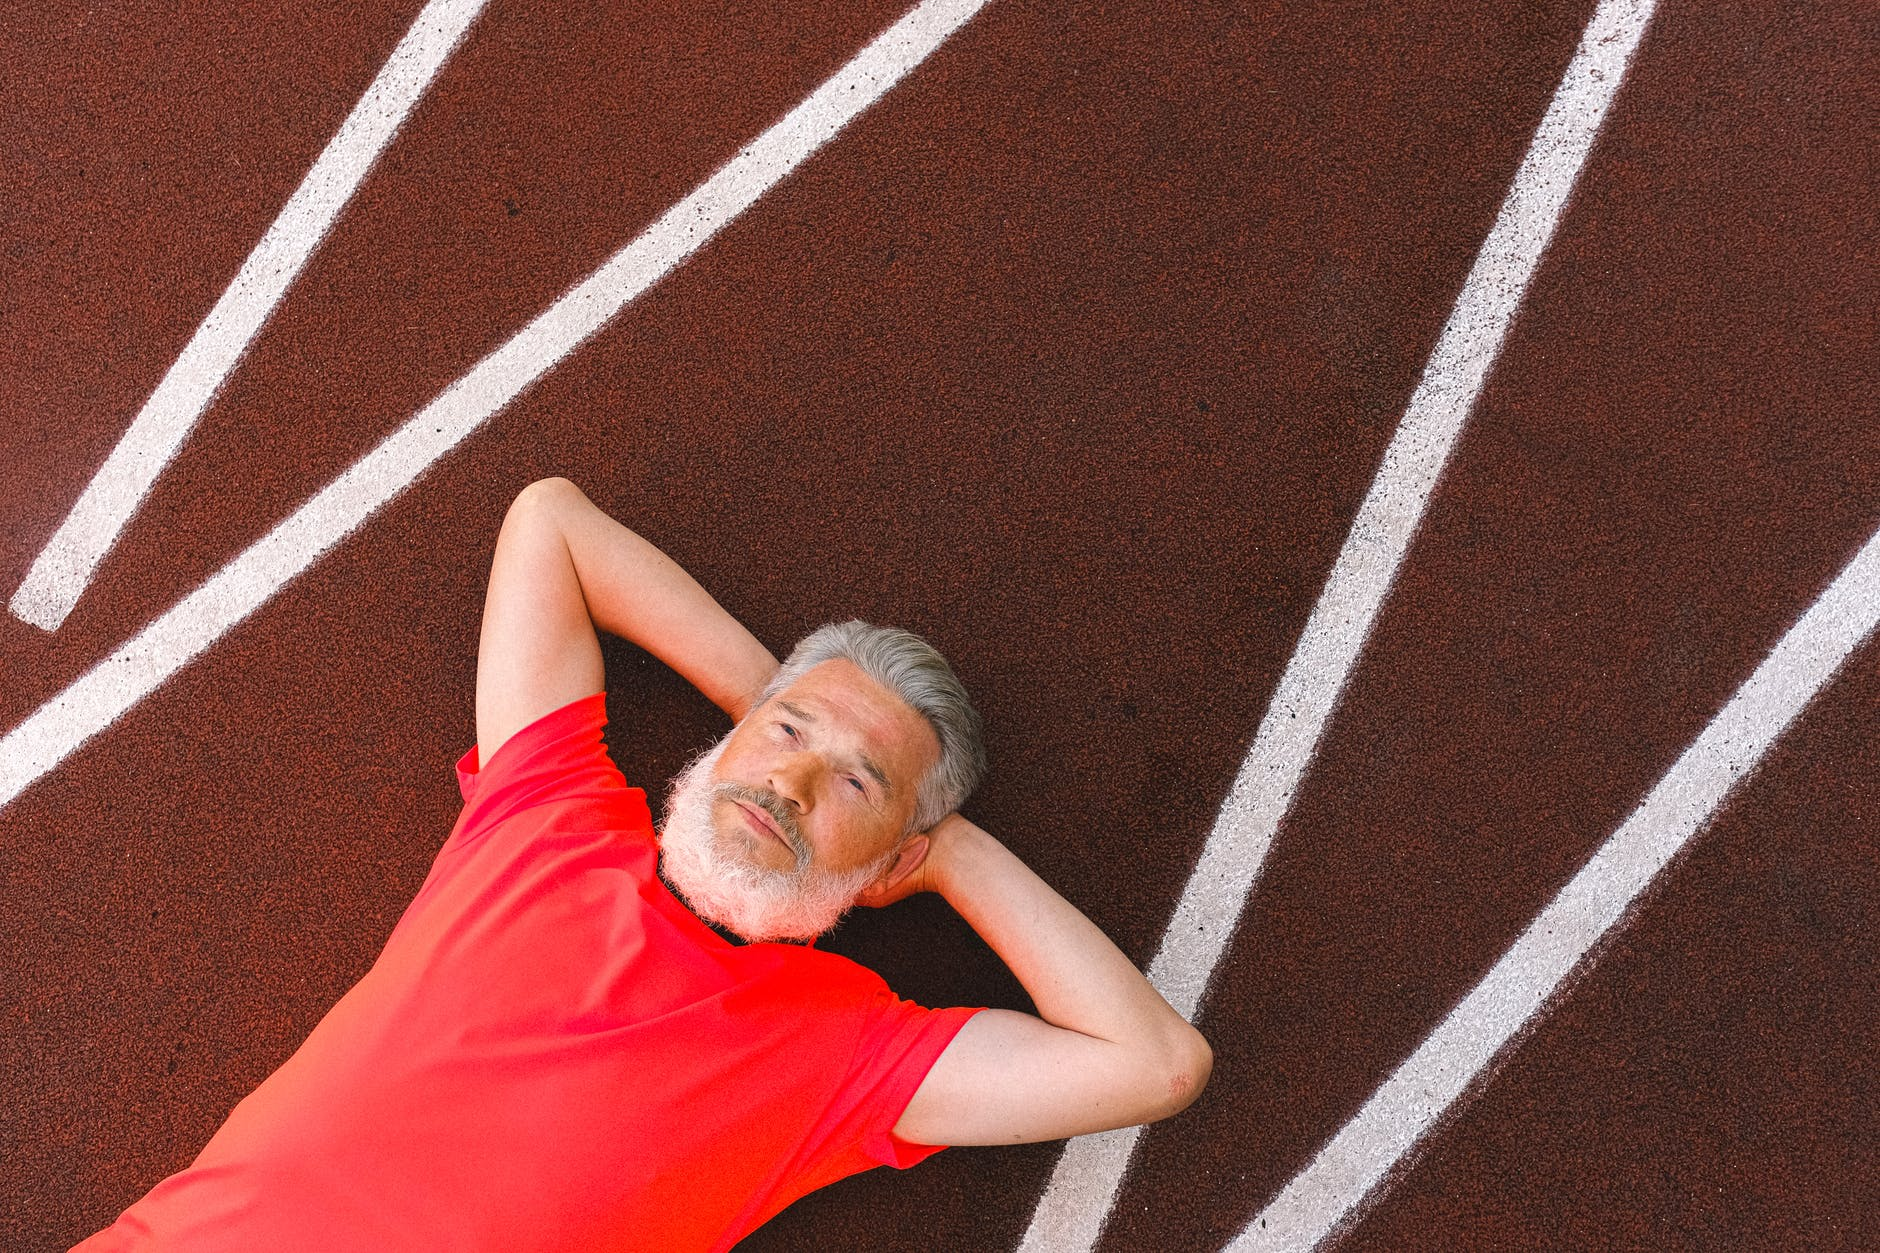 senior man with beard resting peacefully on racetrack